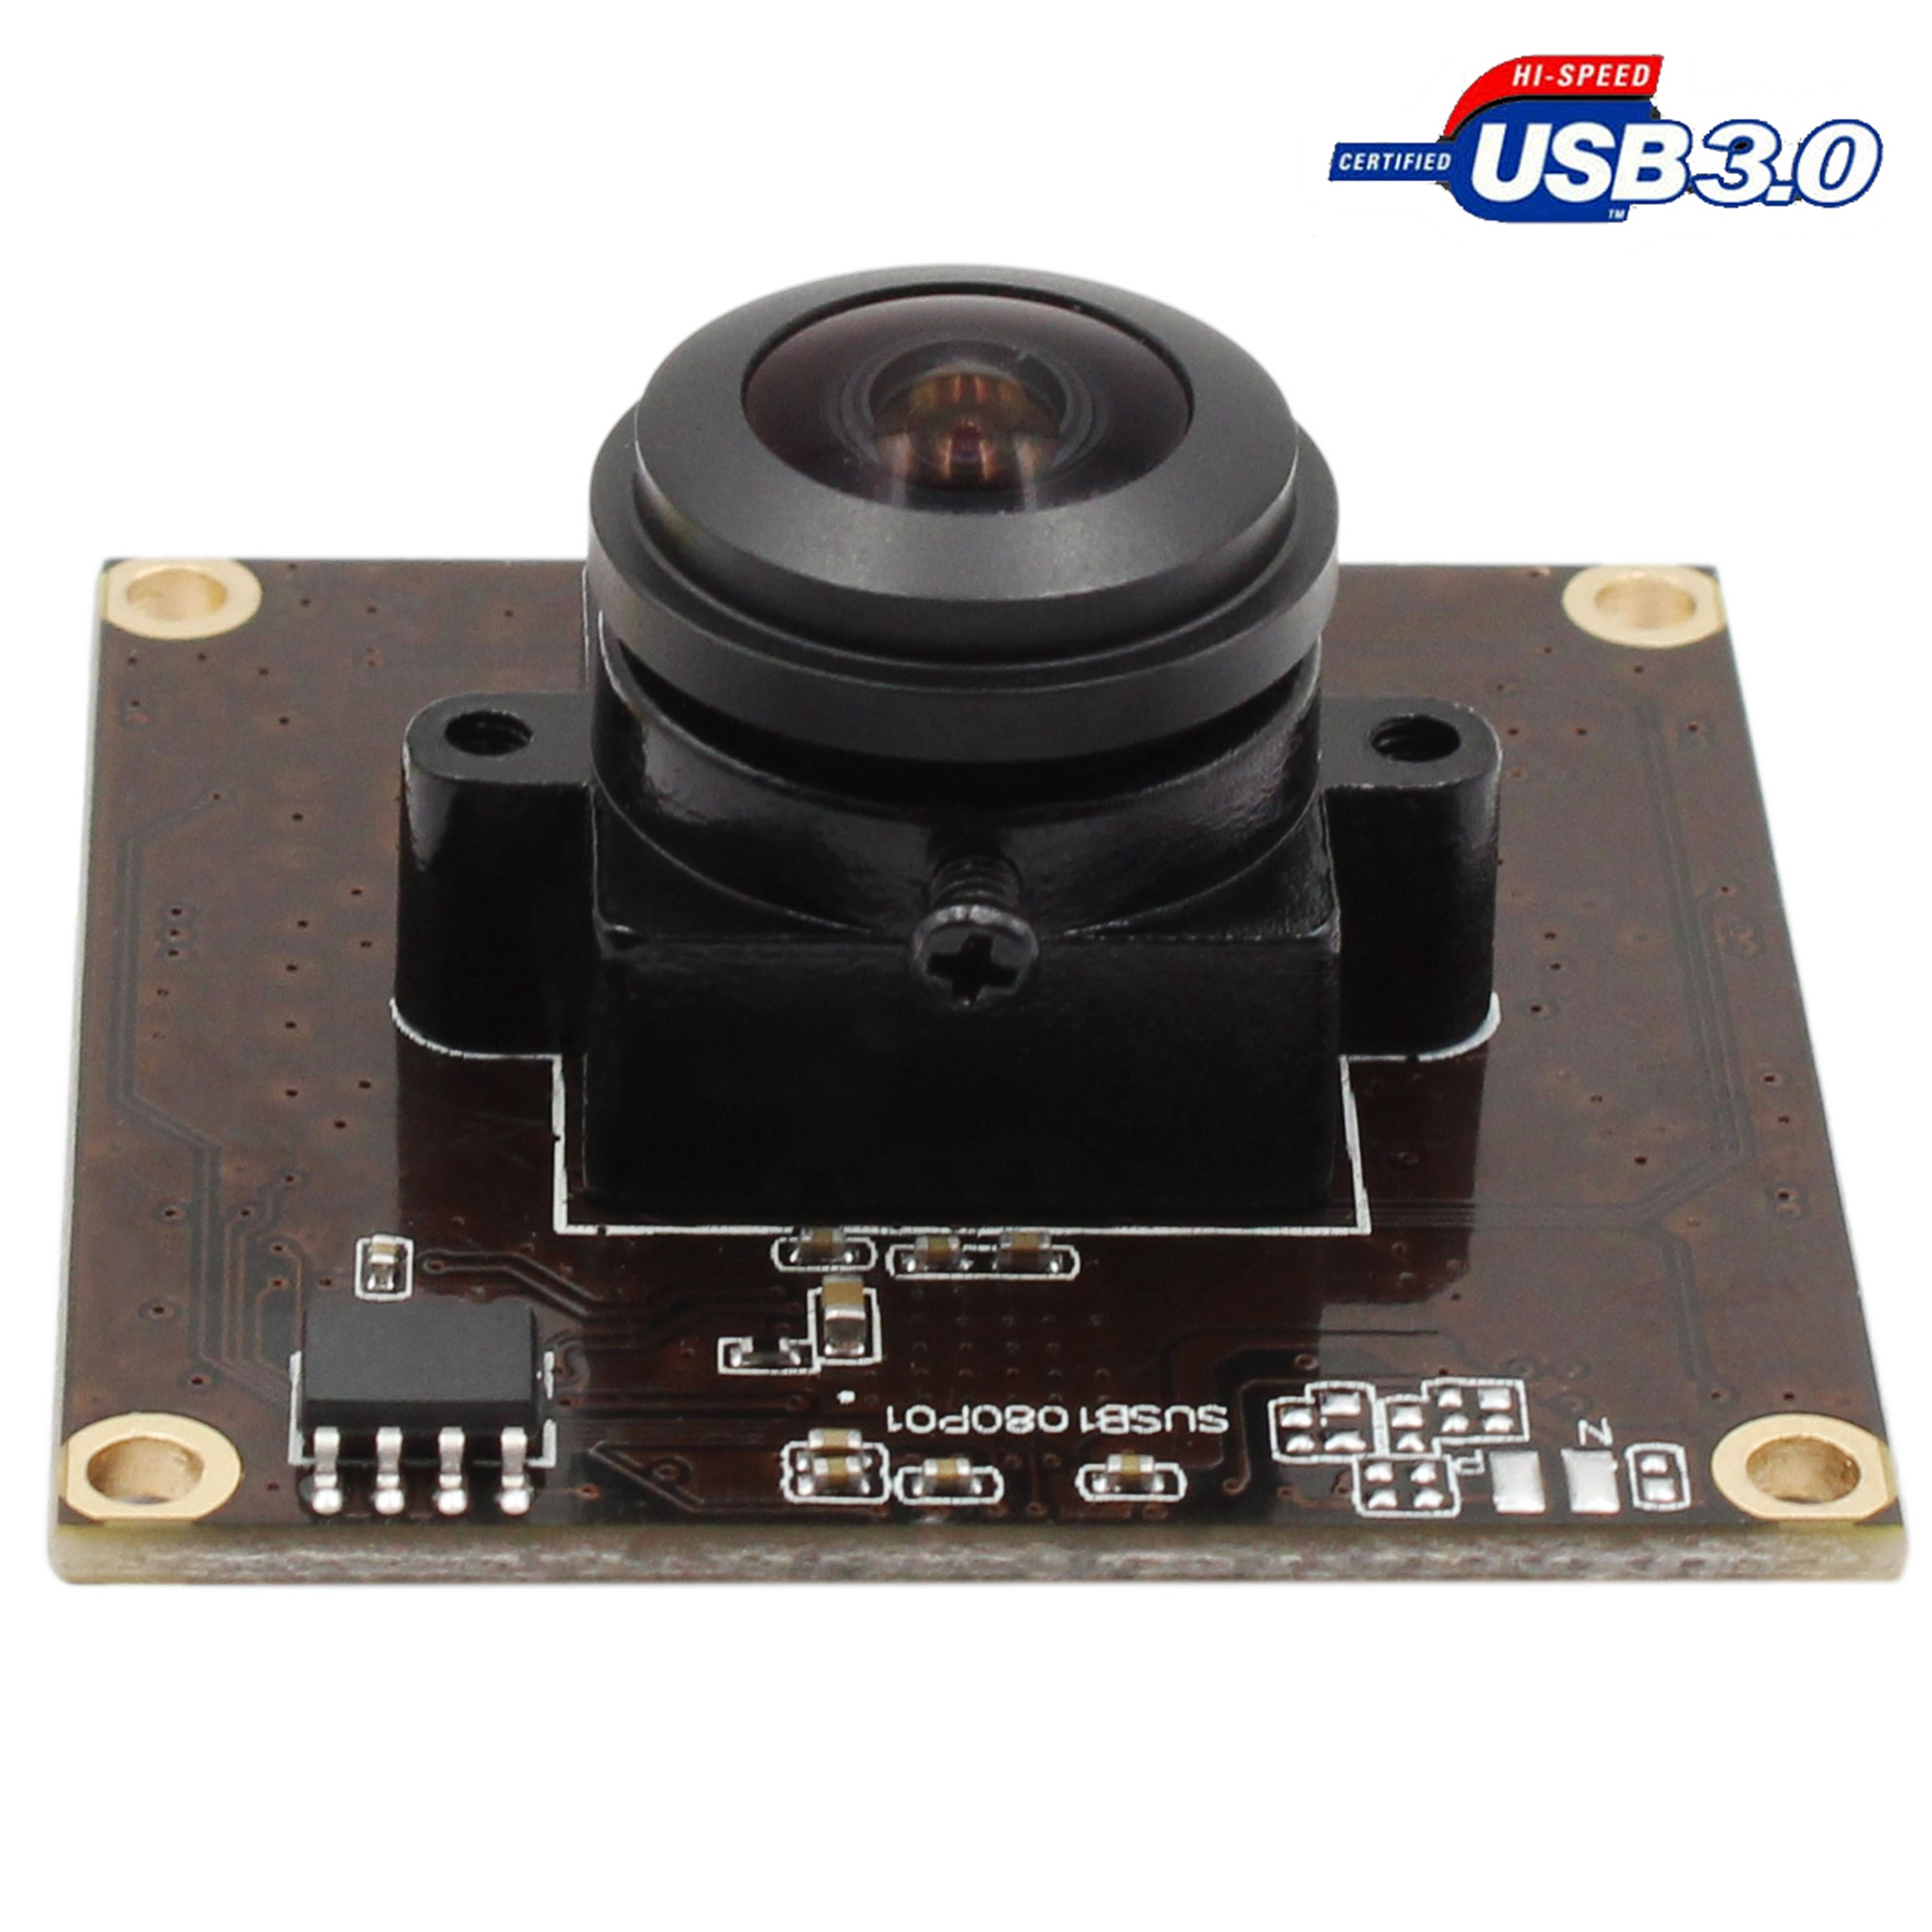 ELP Fisheye Wide View Angle 180degree 2MP Full HD 1080P 50fps USB 3.0 Camera Module Sony IMX29 UVC Plug Play Driverless OTG Webcam